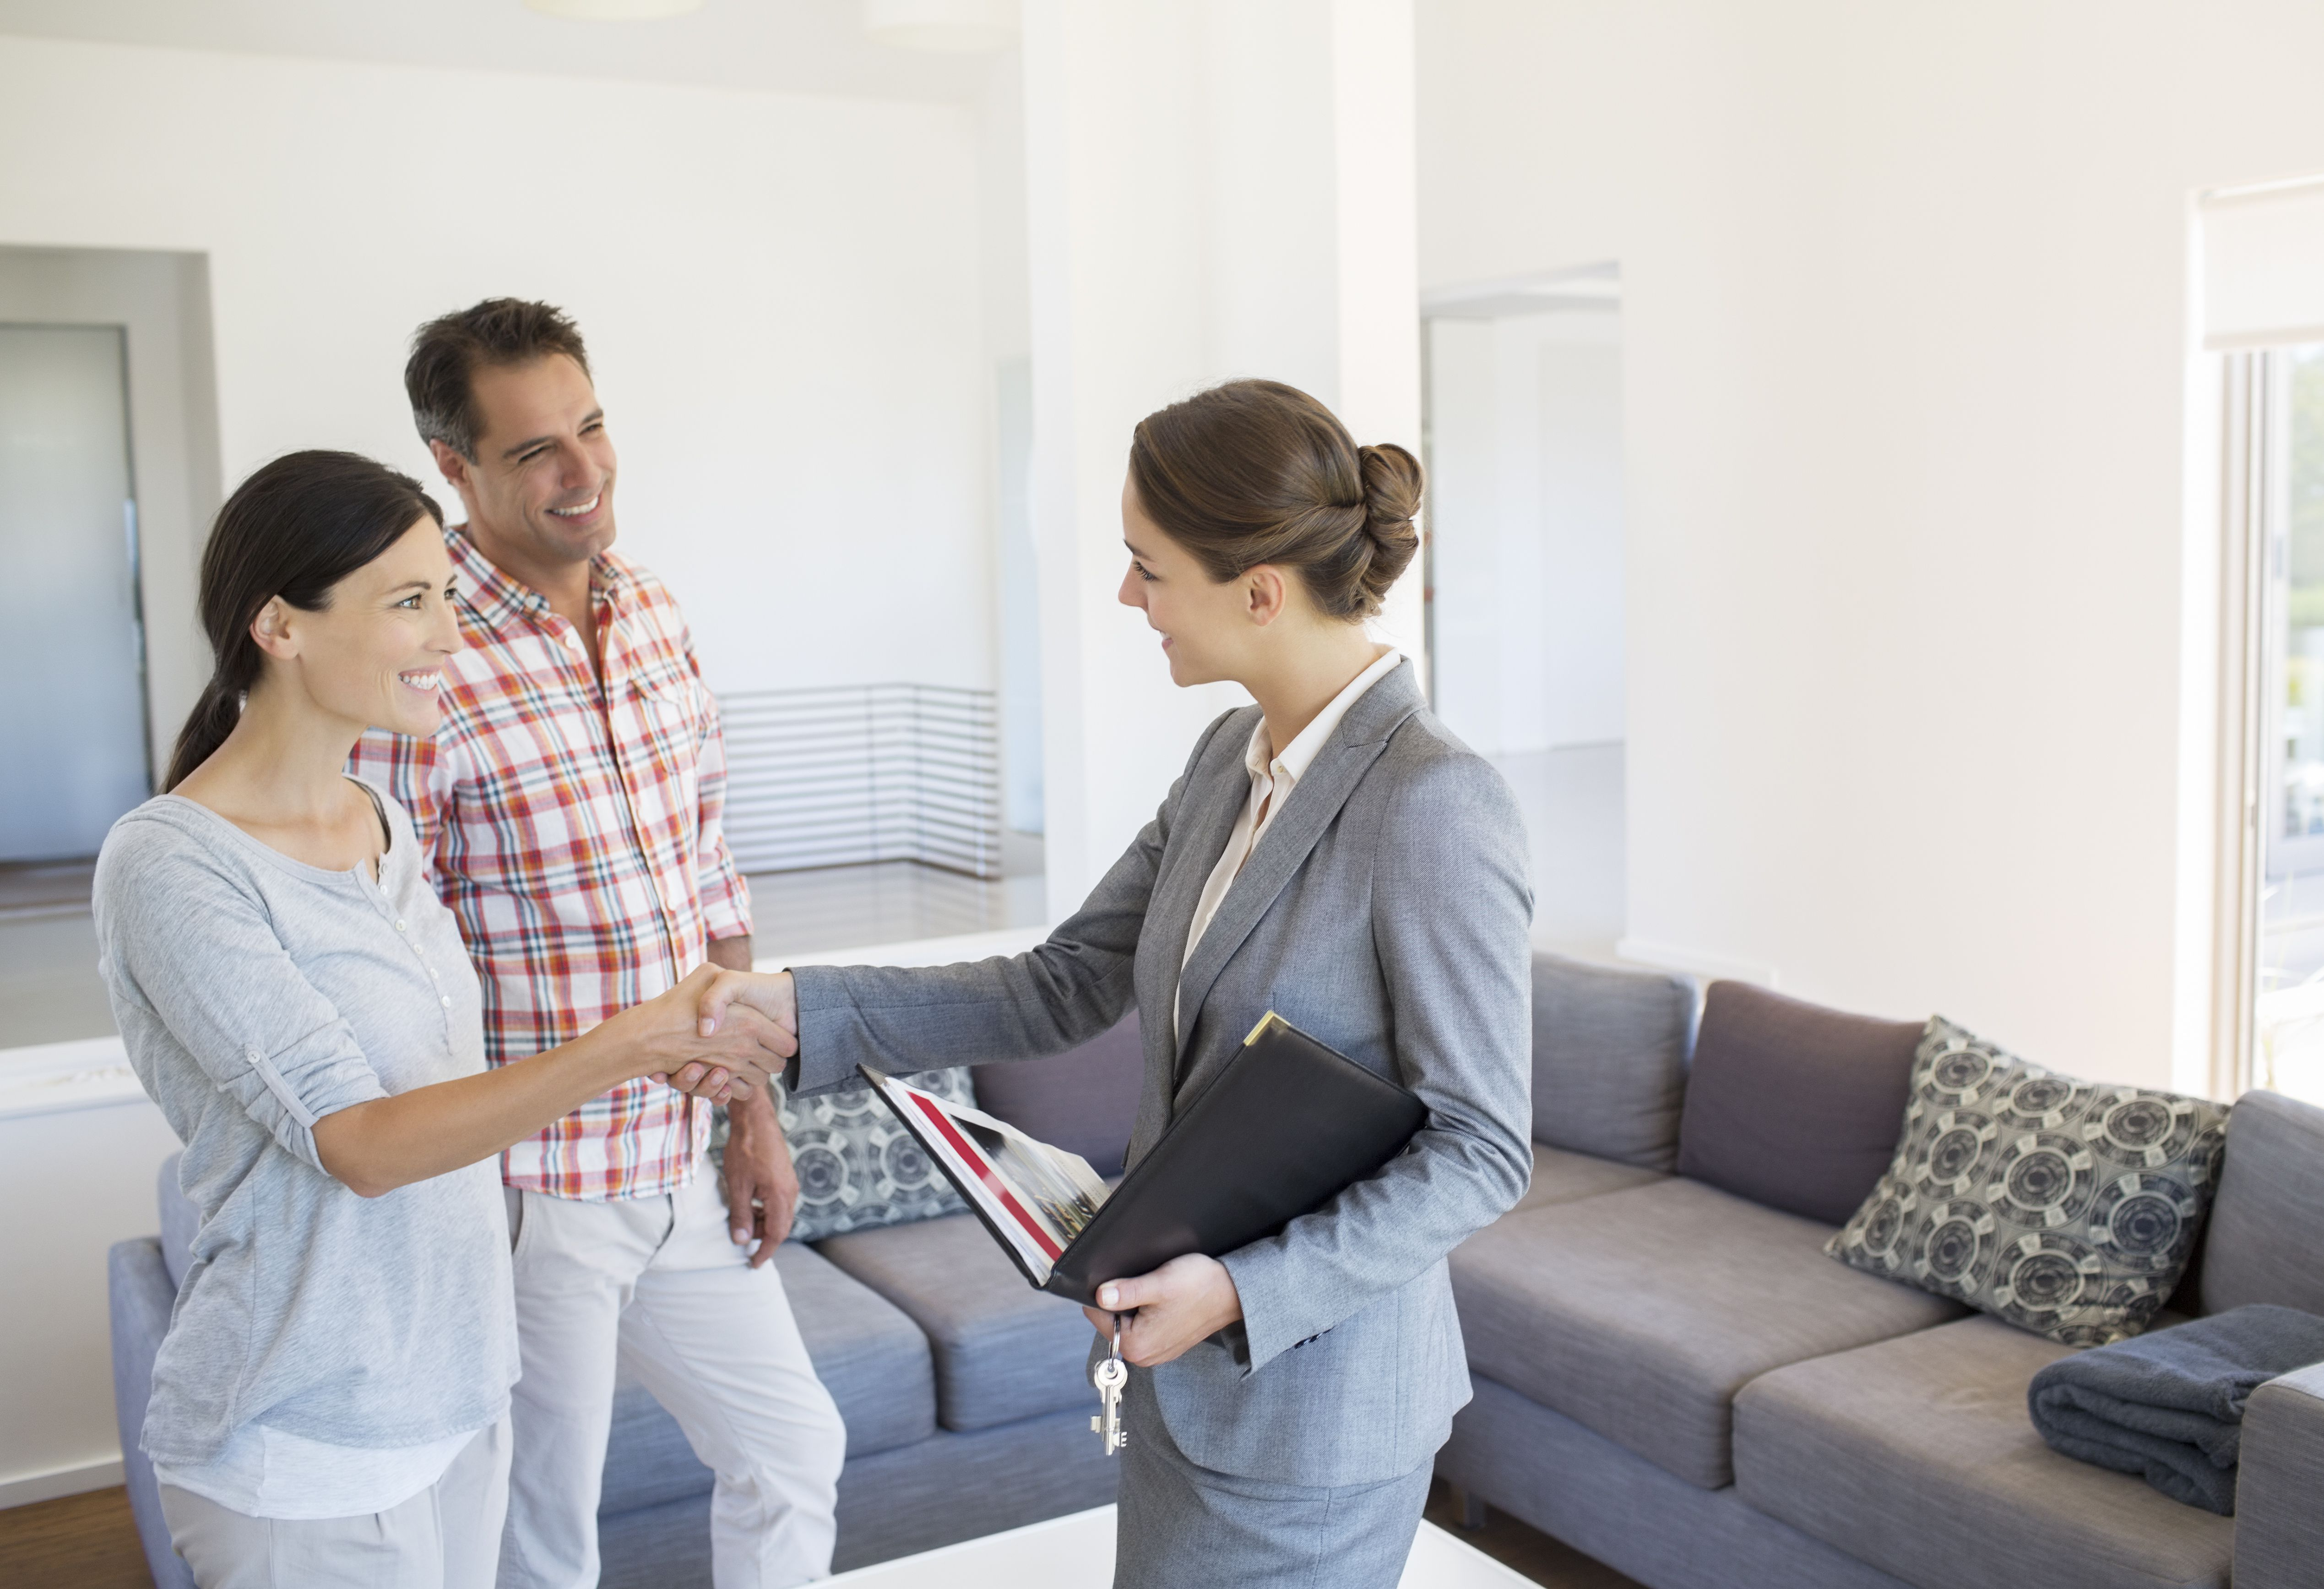 10 Rules For Buyers Working With Real Estate Agents